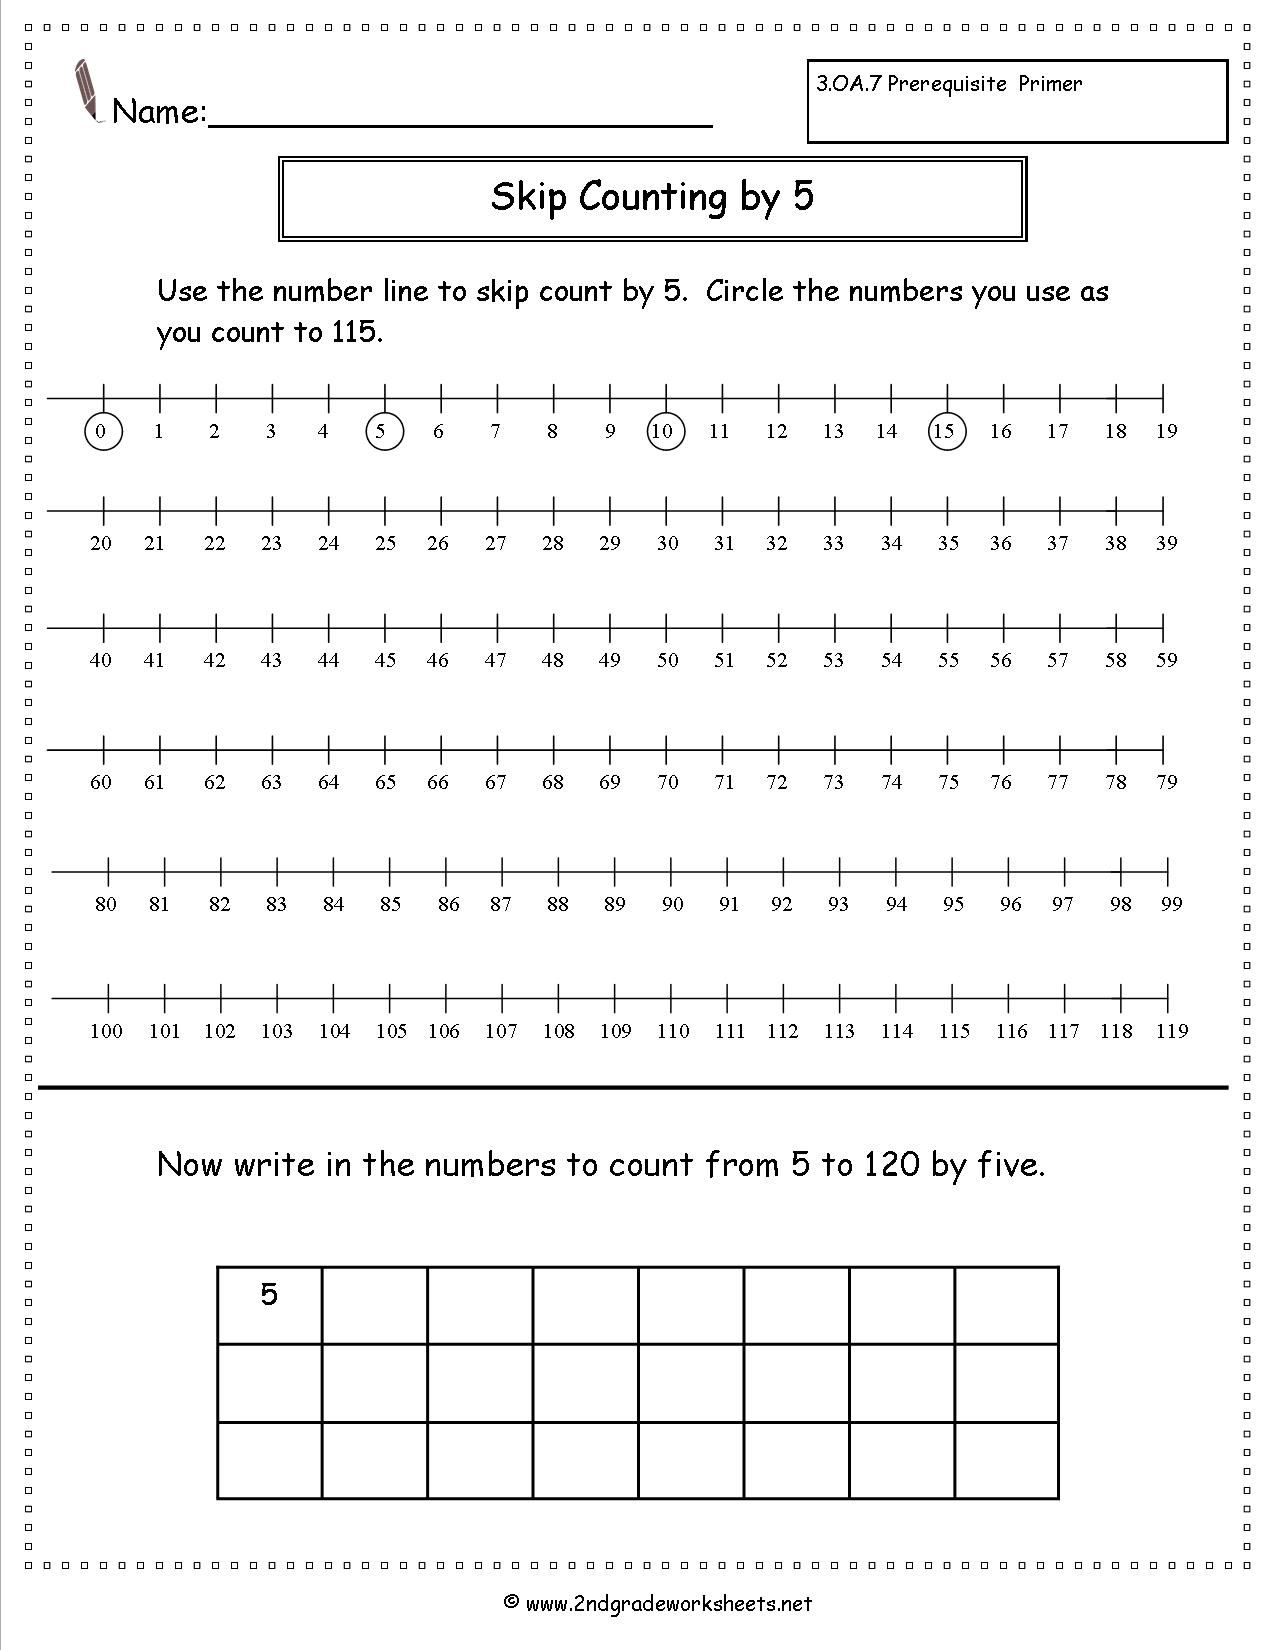 skip counting by 5 worksheet homework pinterest skip counting worksheets and teaching kids. Black Bedroom Furniture Sets. Home Design Ideas